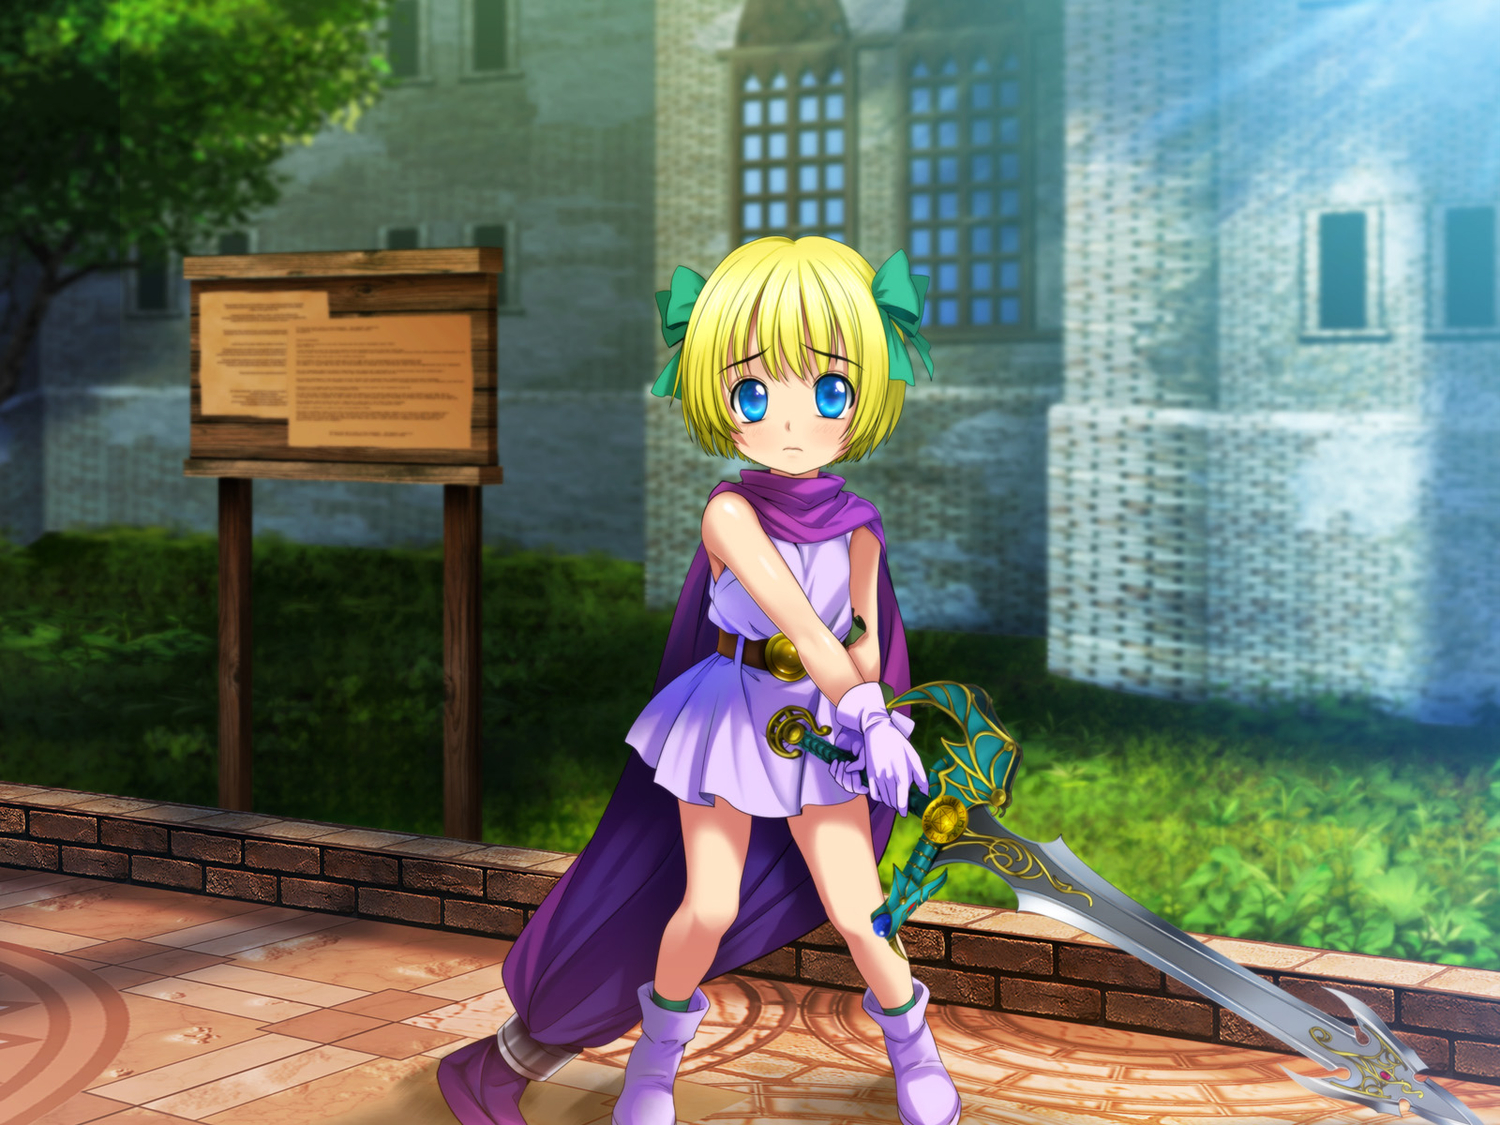 bianca's_daughter blonde_hair blue_eyes dragon_quest loli moonknives sword weapon